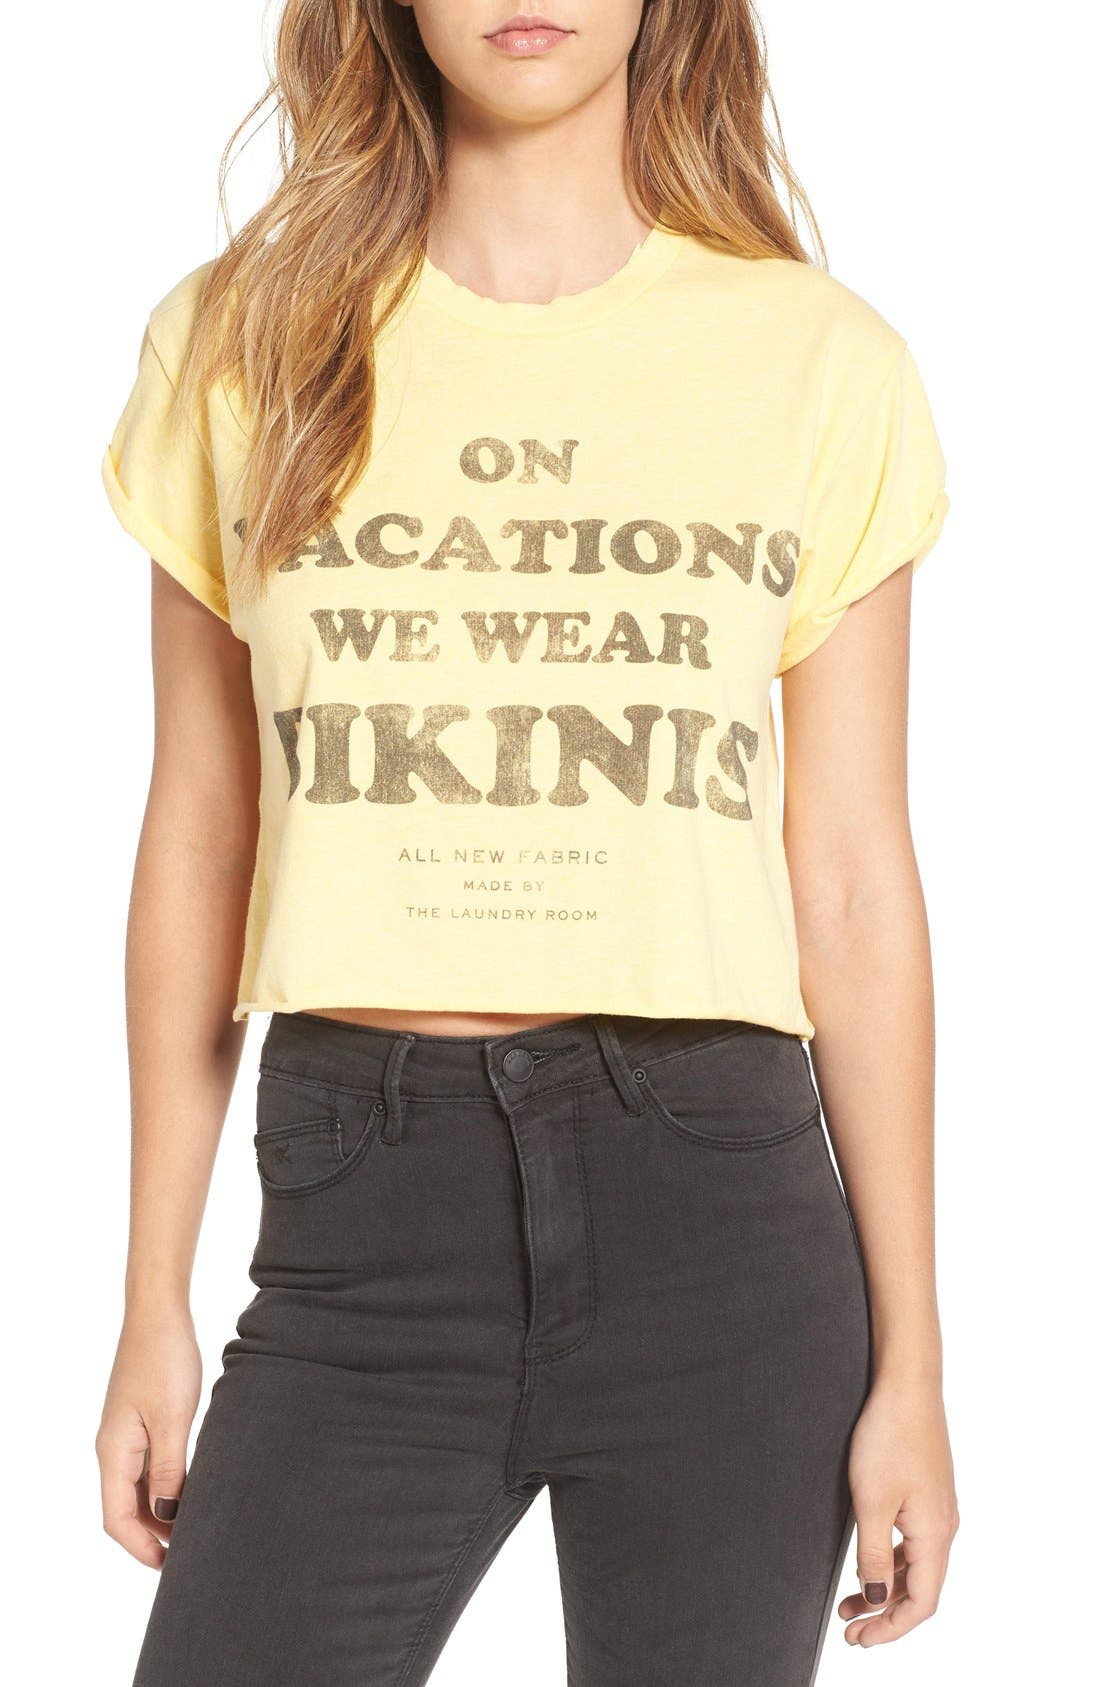 'On Vacations We Wear Bikinis' Crop Tee,                             Main thumbnail 1, color,                             700